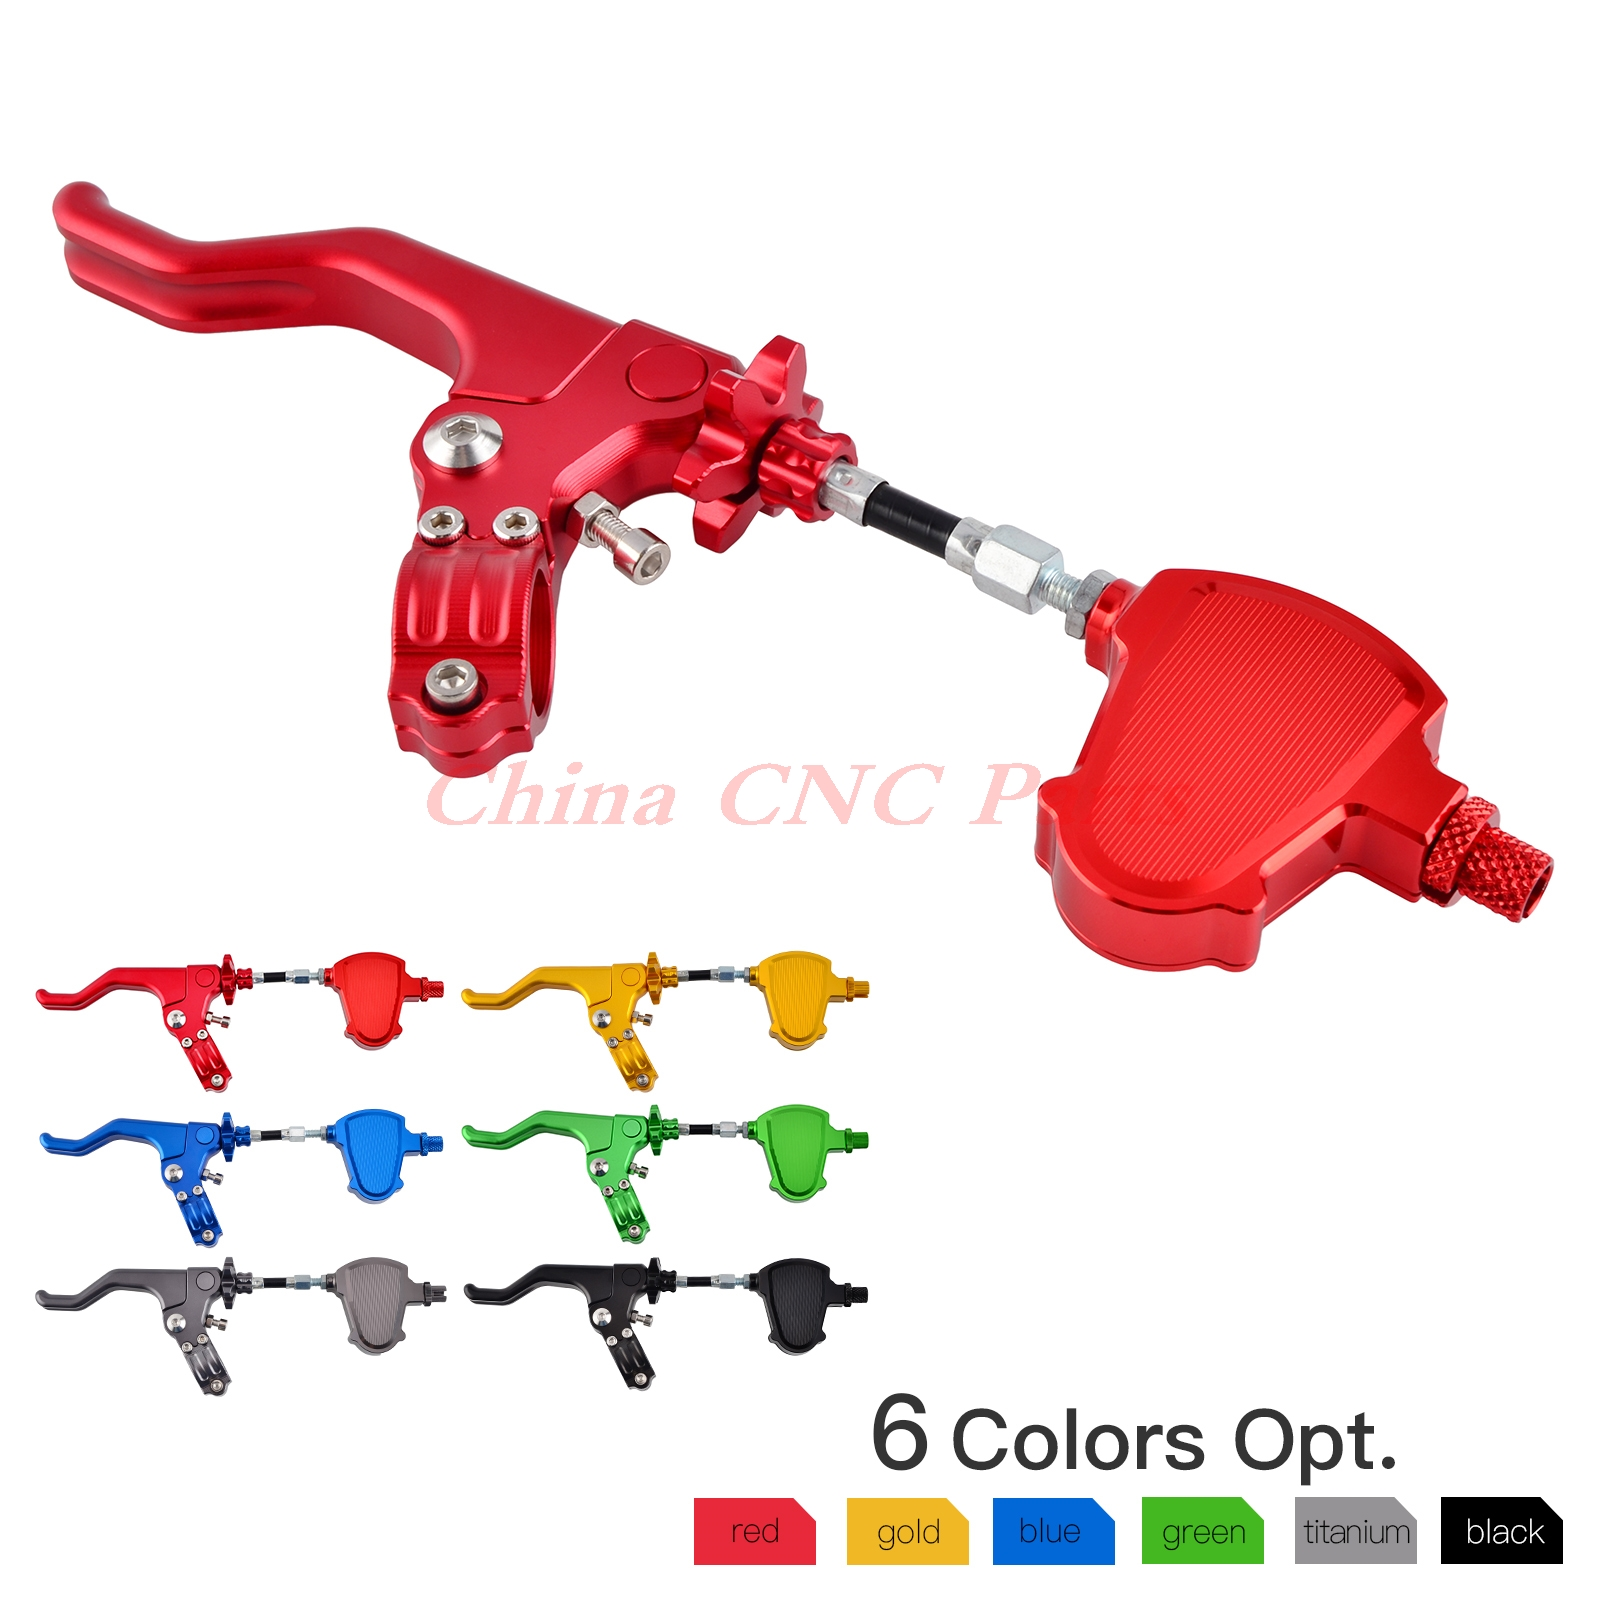 NICECNC Stunt Clutch Pull Cable Lever Replacement Easy System For Honda CRF250R 450R CRF230F 250L/M CBR600RR CB600F NC750 NC700 10piece 100% new m3054m qfn chipset